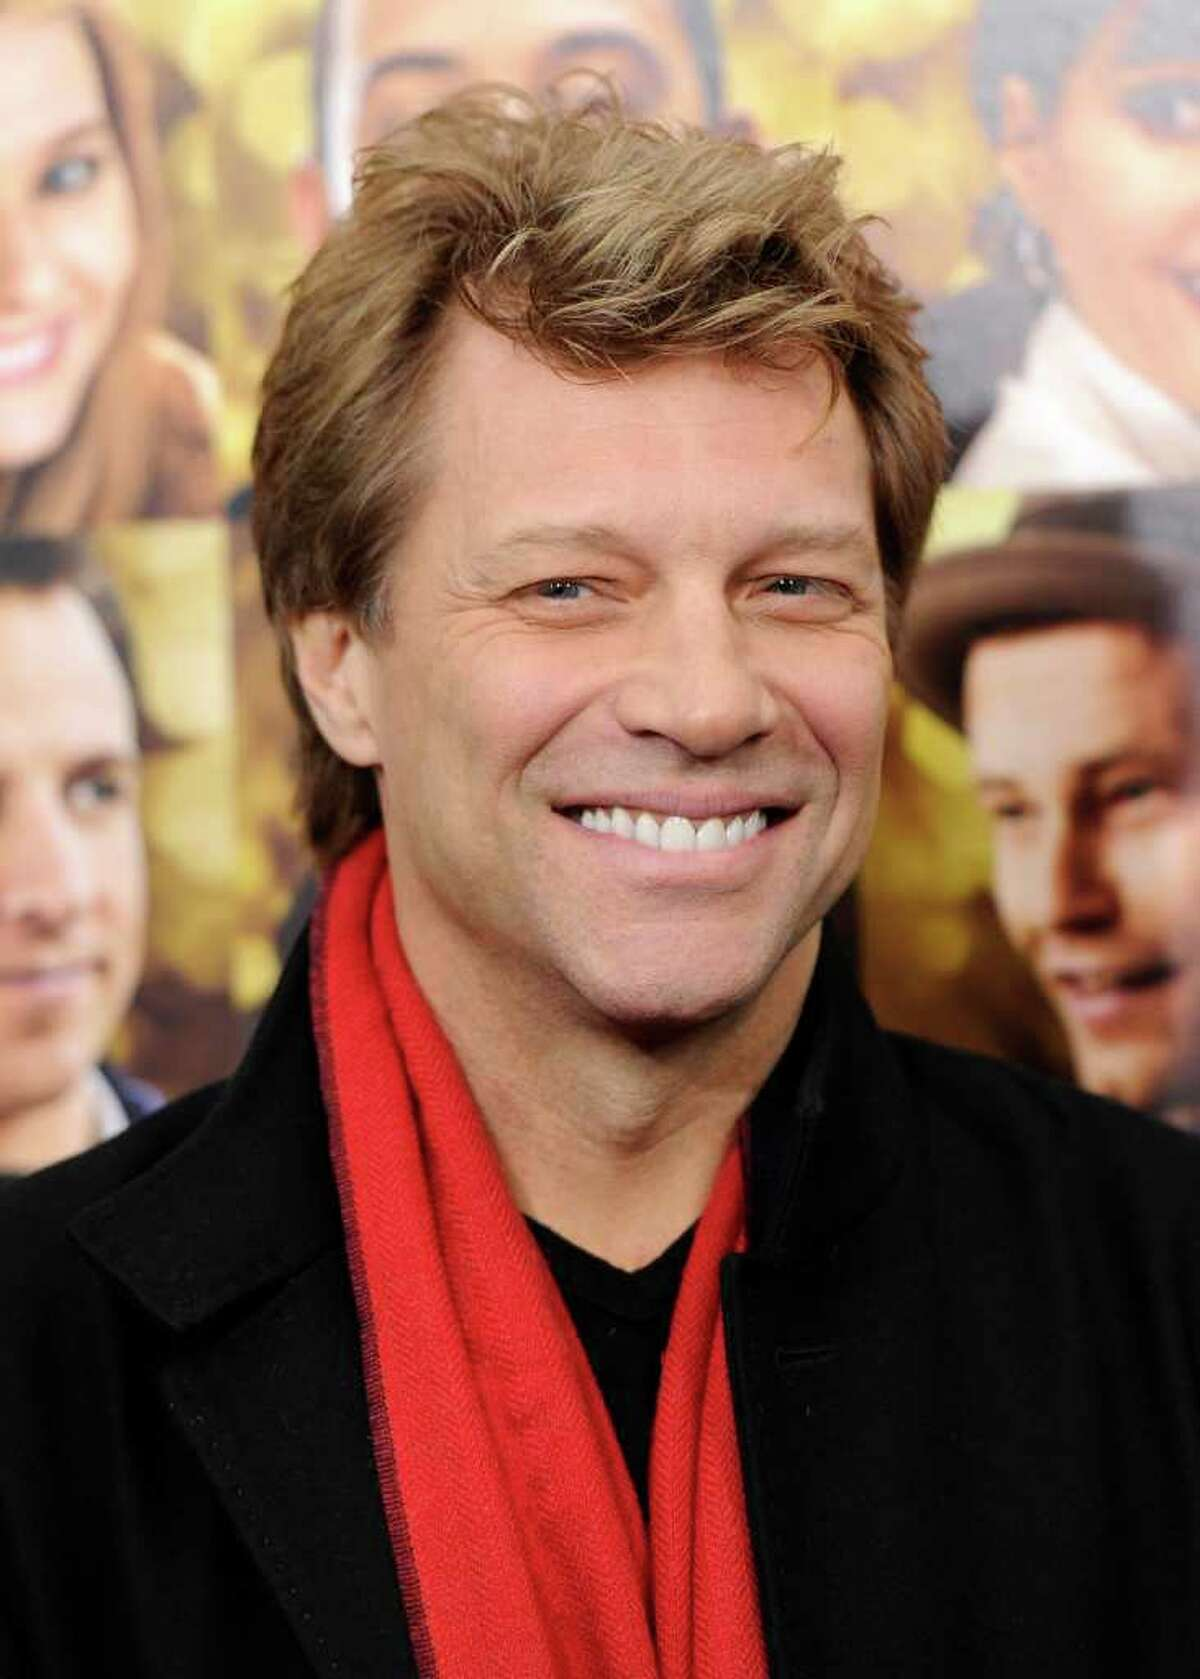 """FILE - In a Wednesday, Dec. 7, 2011 file photo, singer Jon Bon Jovi attends the premiere of """"New Year's Eve"""" at the Ziegfeld Theatre in New York. Bon Jovi wants fans to know he's not dead, and he has posted a photo proving it. False reports of the New Jersey-born musician's death spread online after a fake news release surfaced Monday, Dec. 19, 2011 on social media sites. (AP Photo/Evan Agostini, File)"""